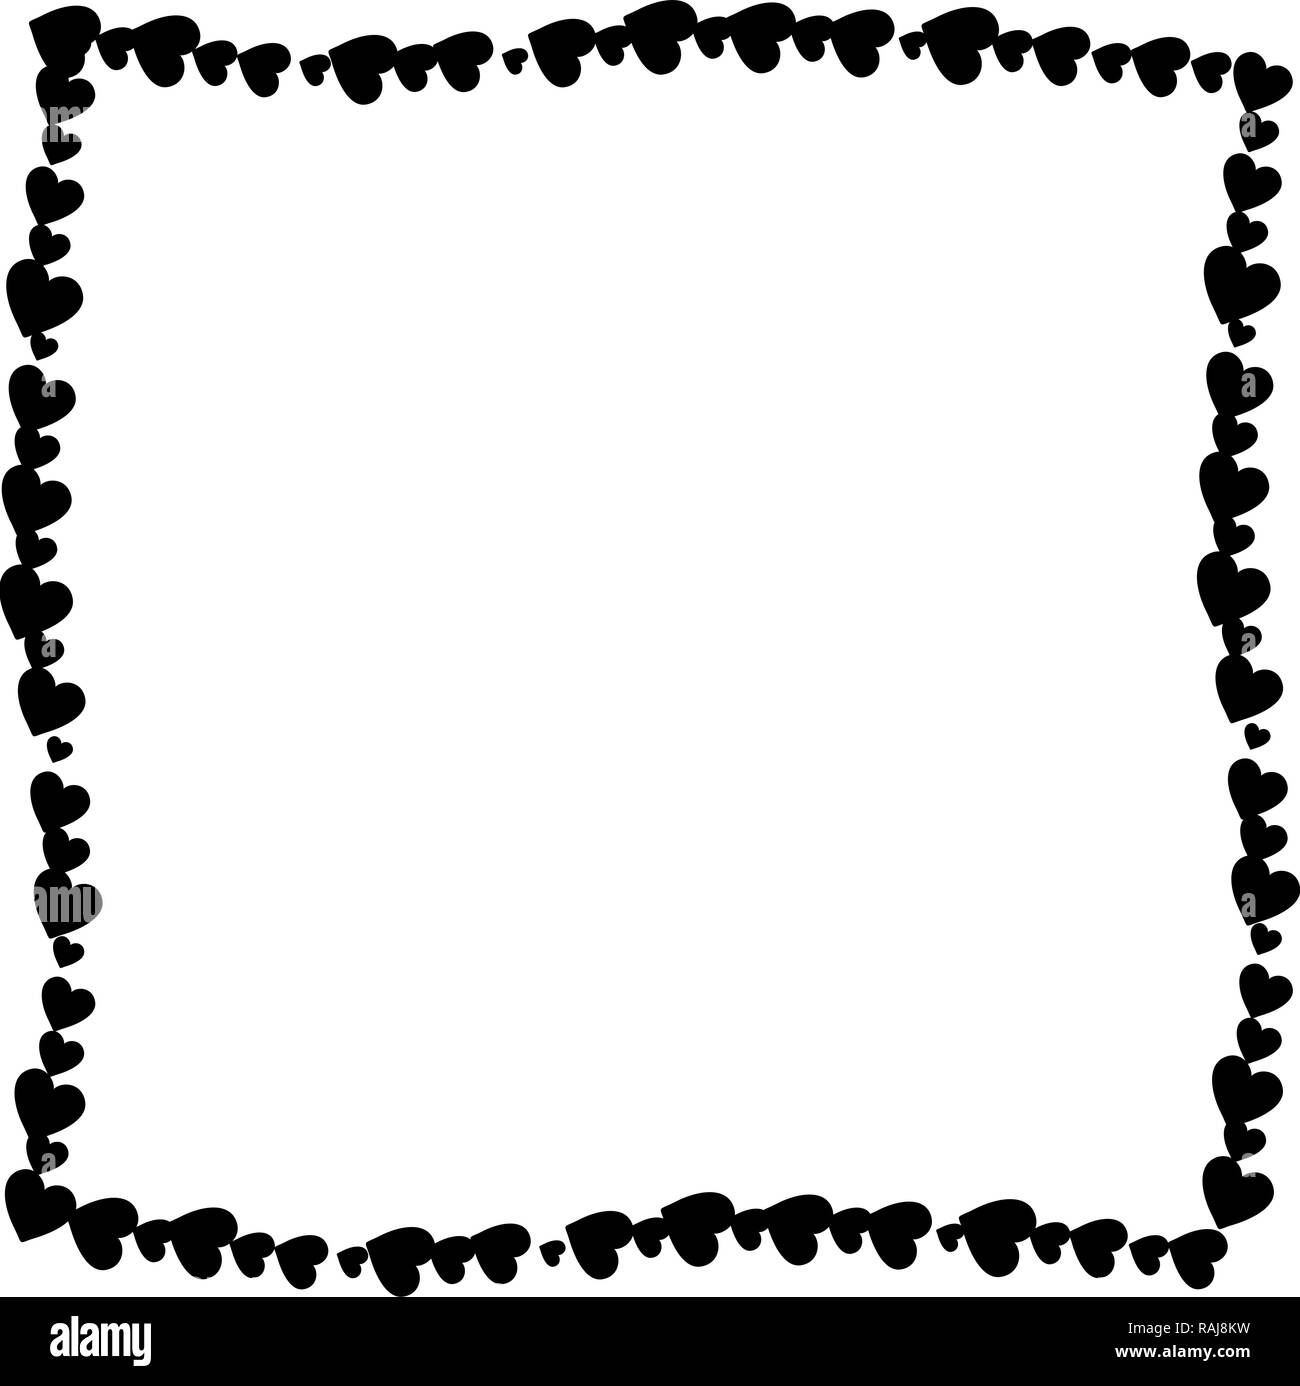 Love Twisted Frame Made Of Cartoon Black Different Sized Hearts